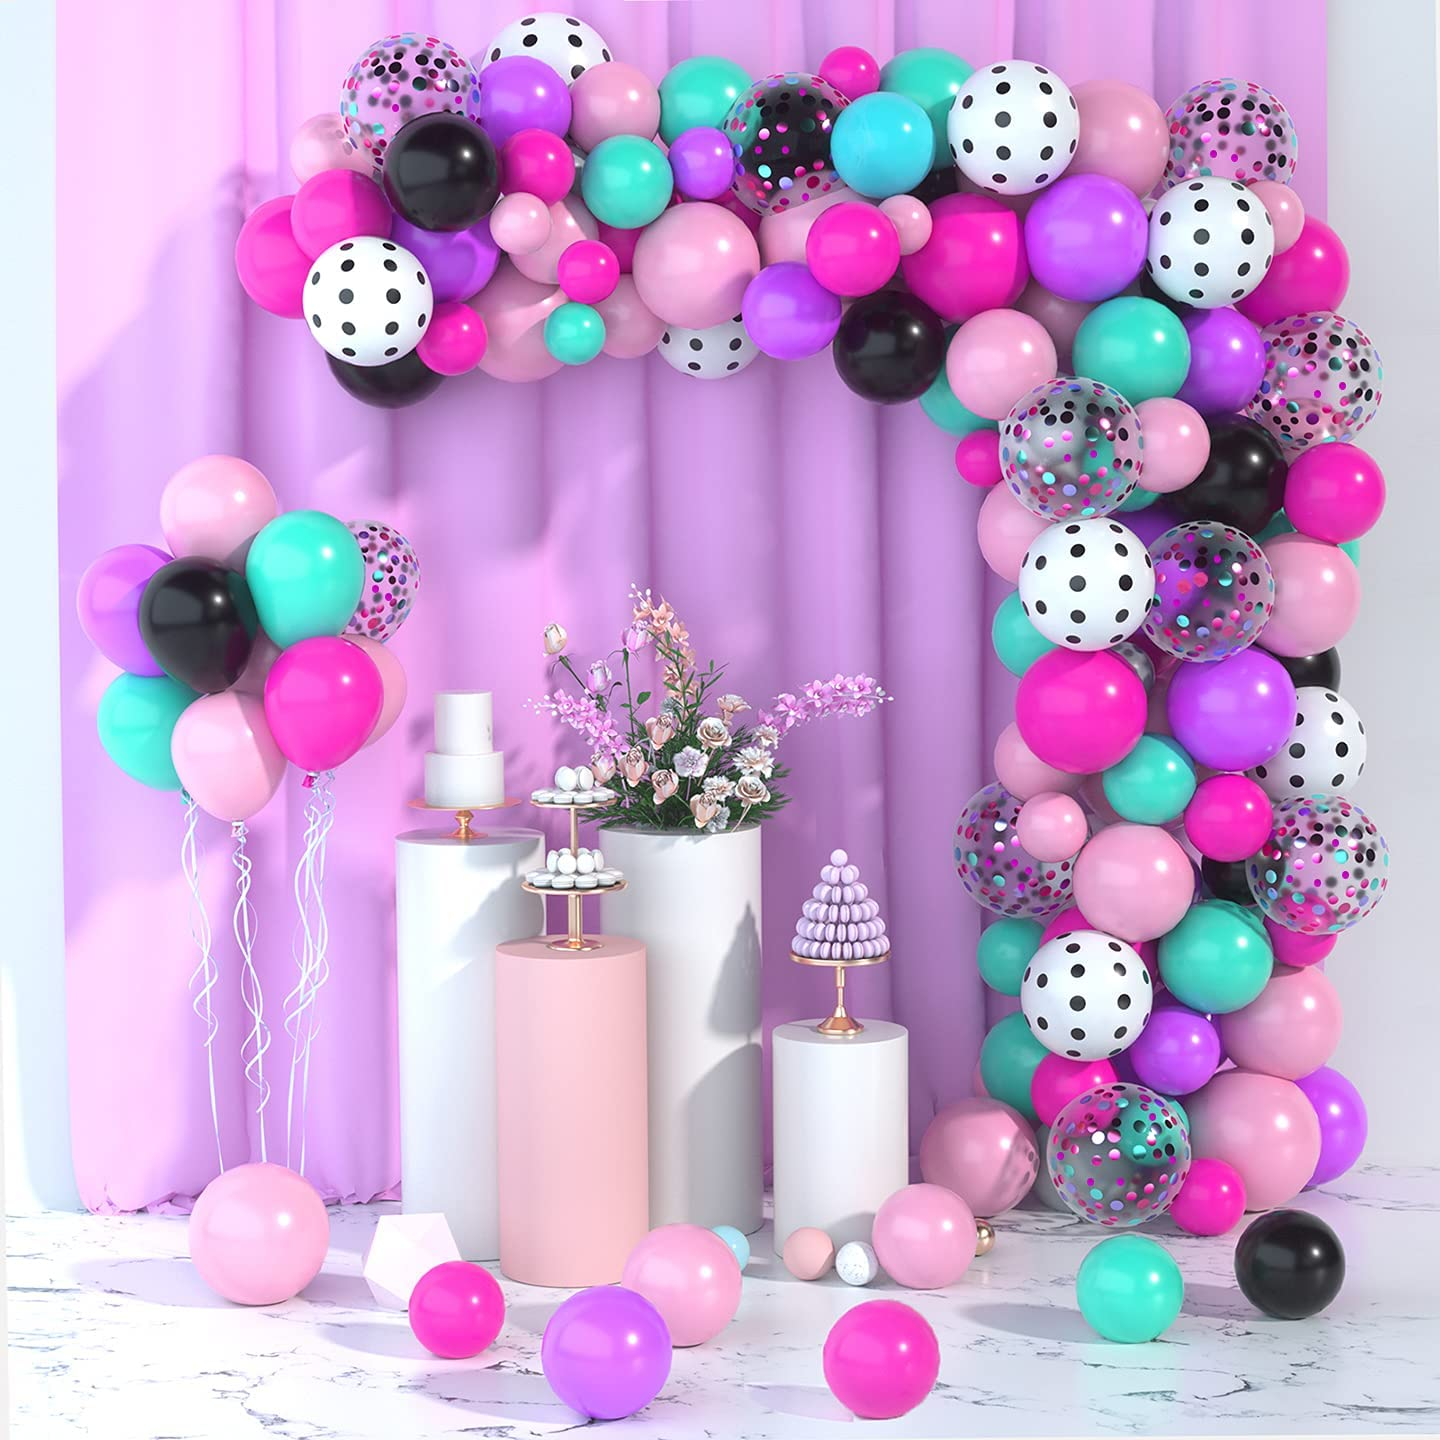 Surprise Party Balloons Garland Kit- 108Pack 12/10/5 inches Rose Red Pink Teal Blue Black Purple White Polka Dots Latex Balloons Confetti Balloons for Surprise Party Supplies Surprise Birthday Baby Shower Decorations